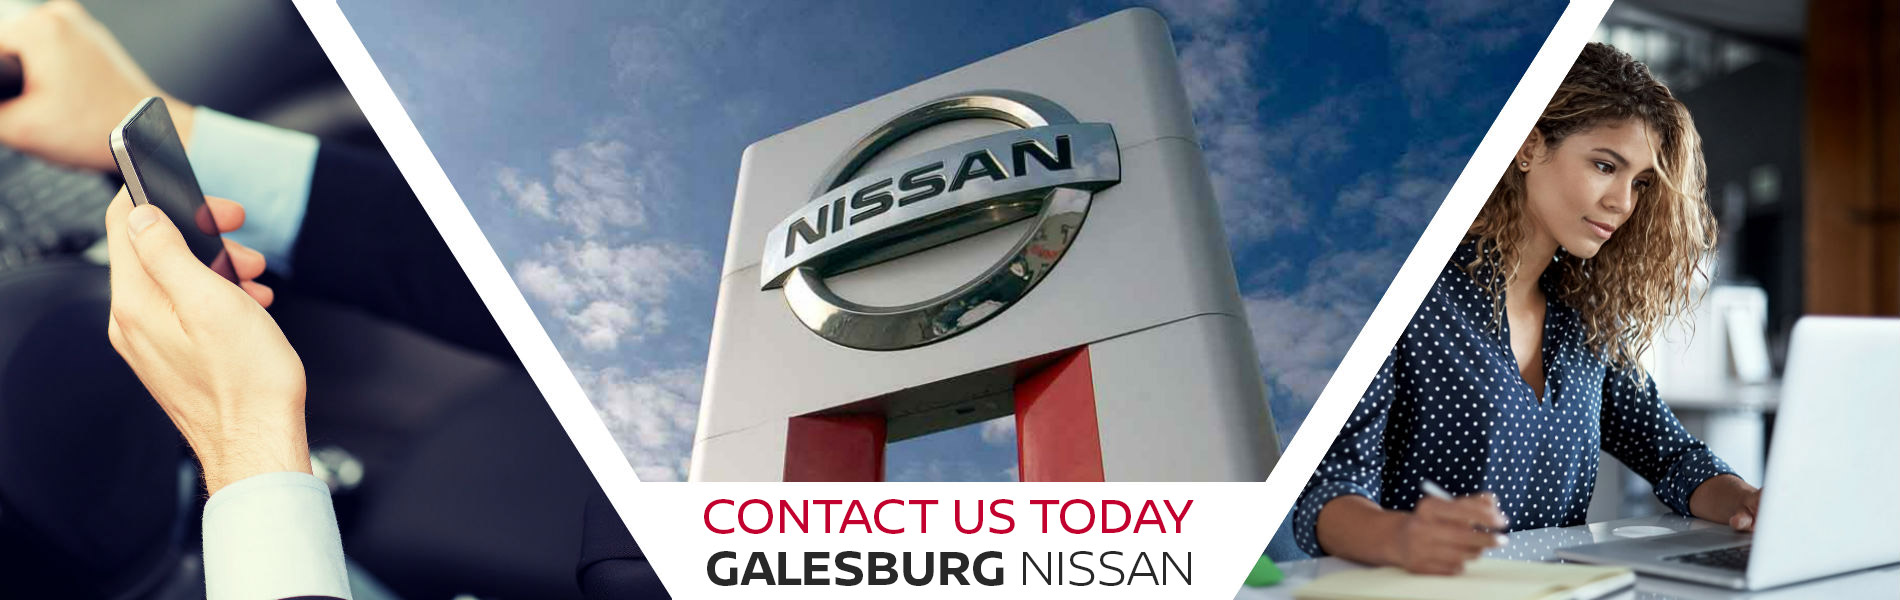 Contact Galesburg Nissan